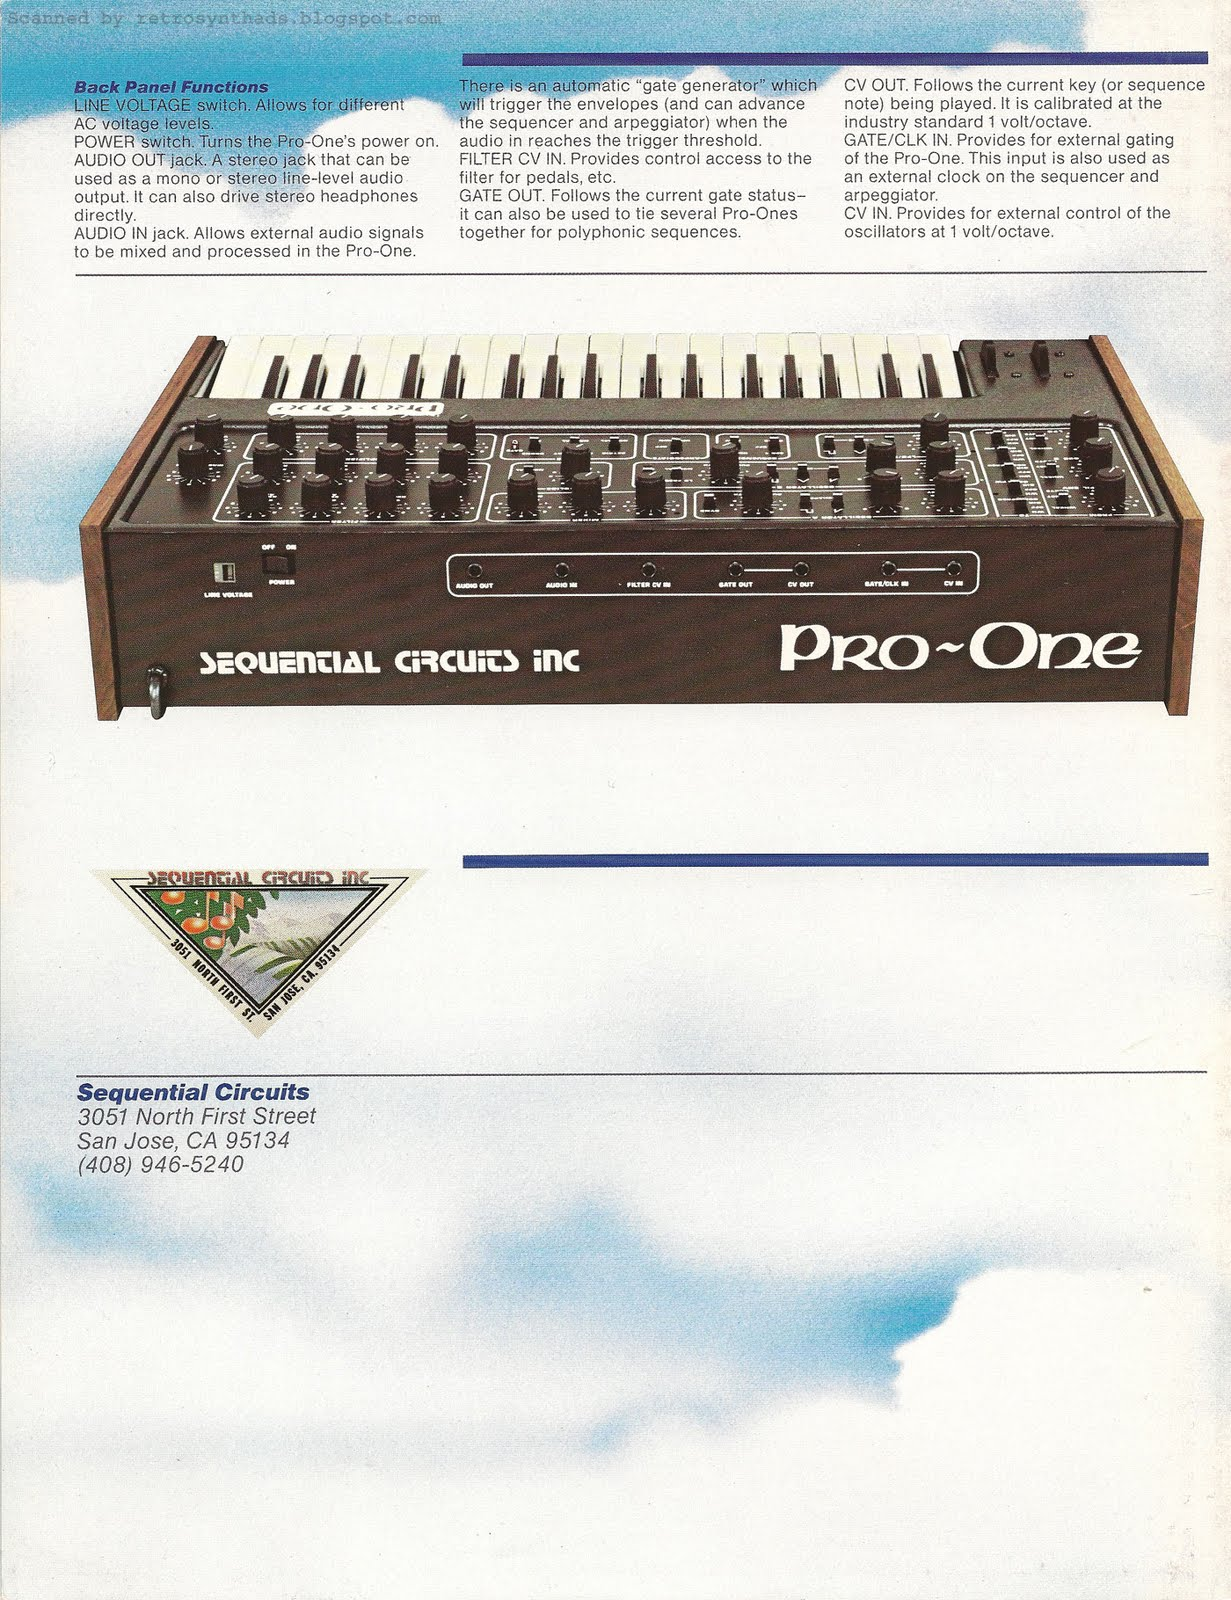 Retro Synth Ads Sequential Circuits Inc Pro One Spec Sheet 1981 Circuit Board Dream Maker Rs101